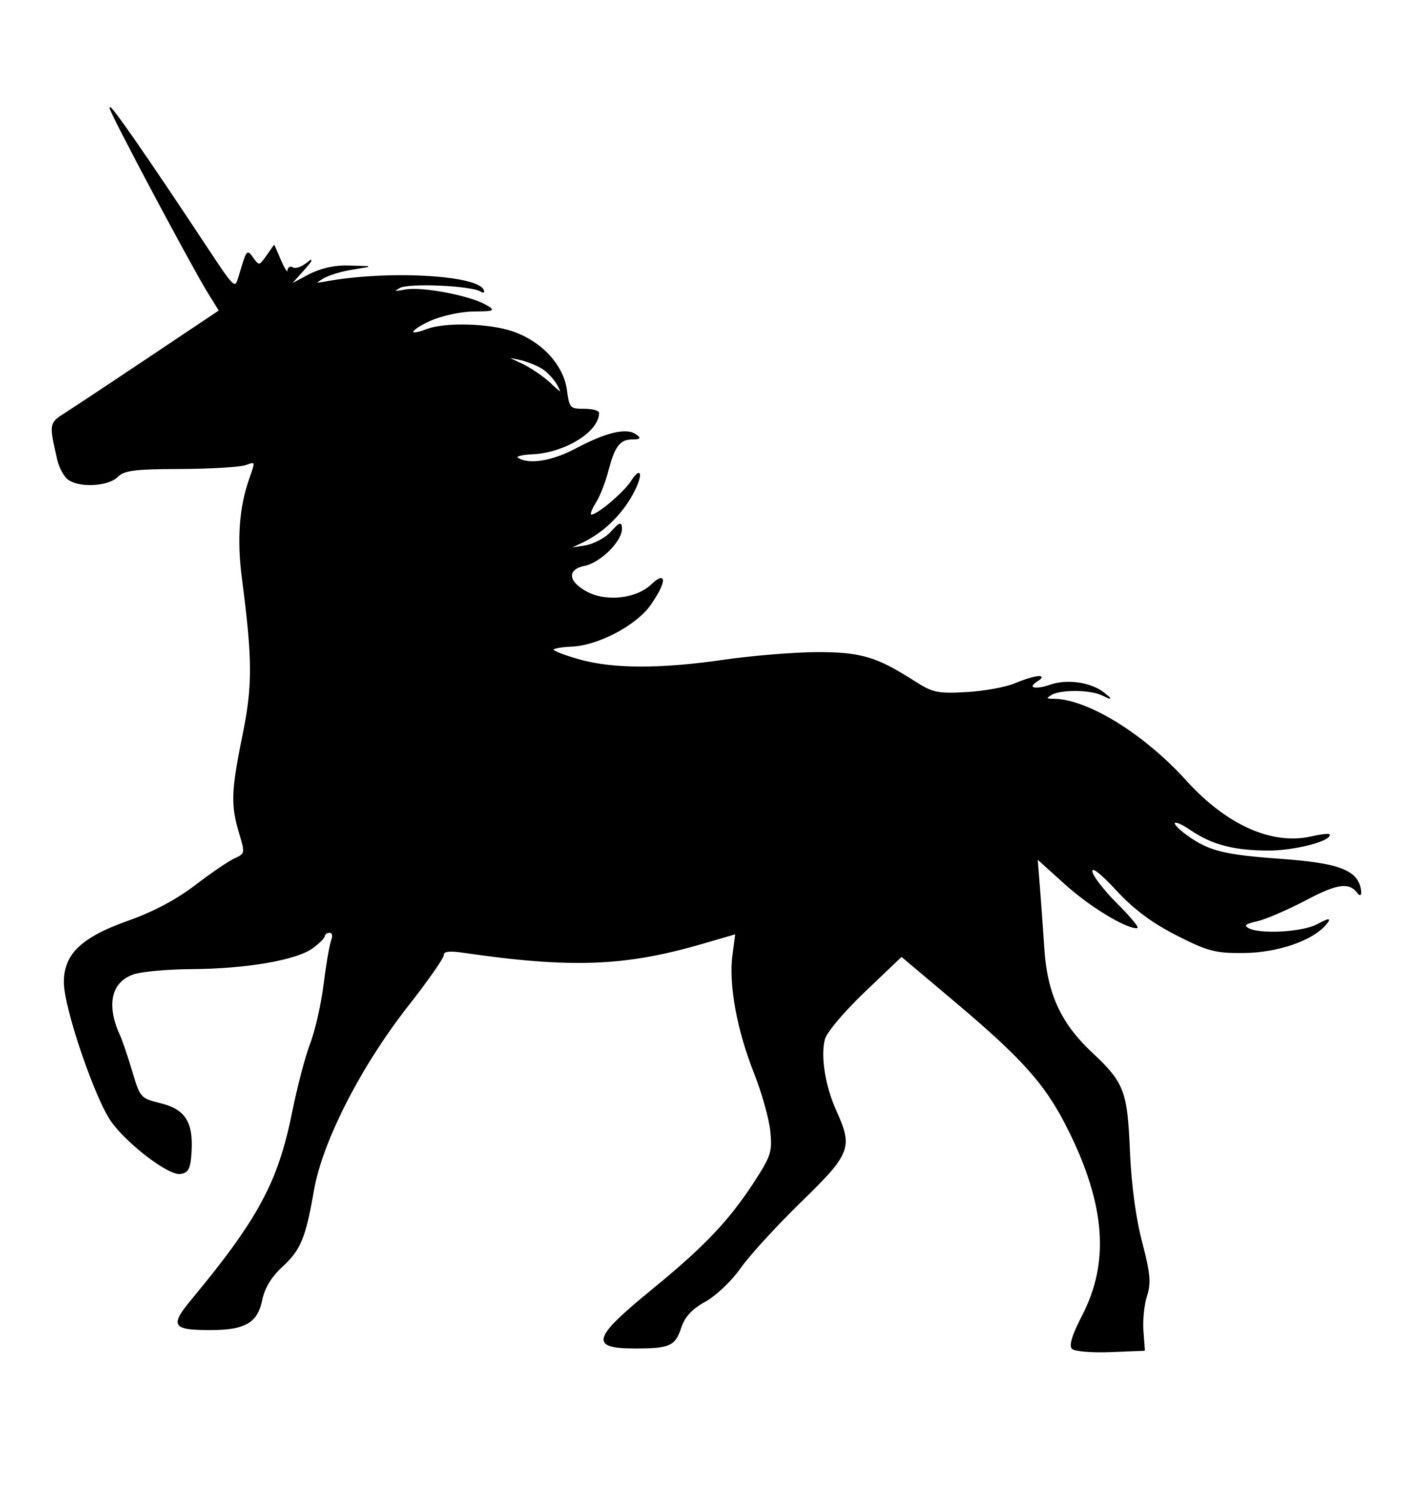 Horse Unicorn Wall Decal Horse Sticker Fairy Tale Unicorn 28 Inches X 26 Inches 782 Hs Feen Silhouette Clipart Kostenlos Pferde Silhouette